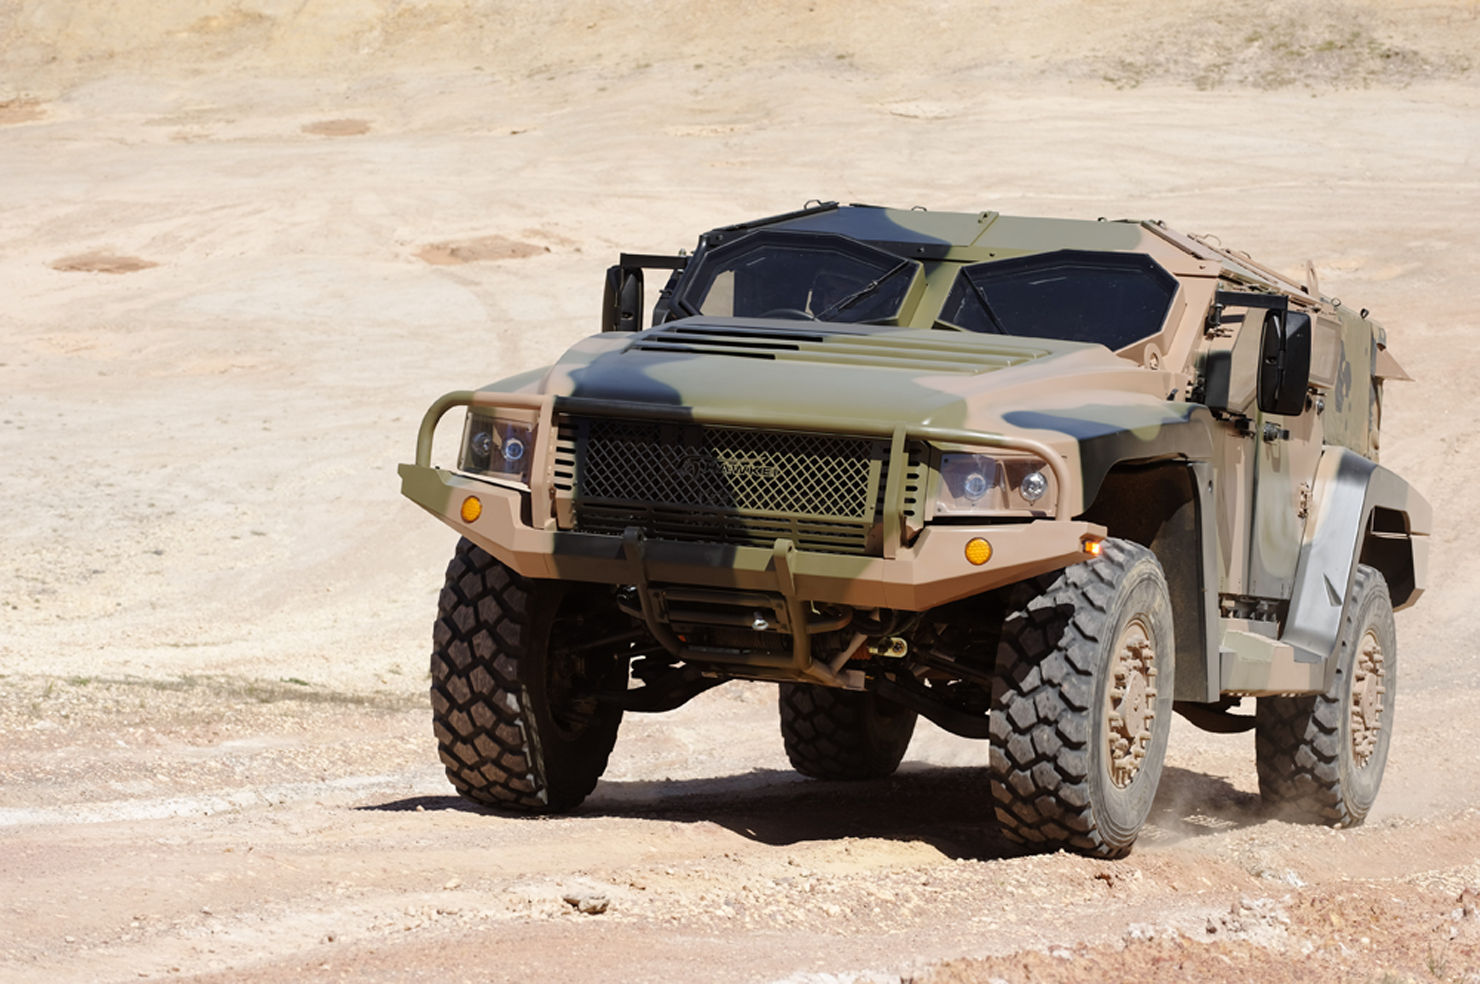 The Hawkei is a military vehicle built for the Australian Defence Force